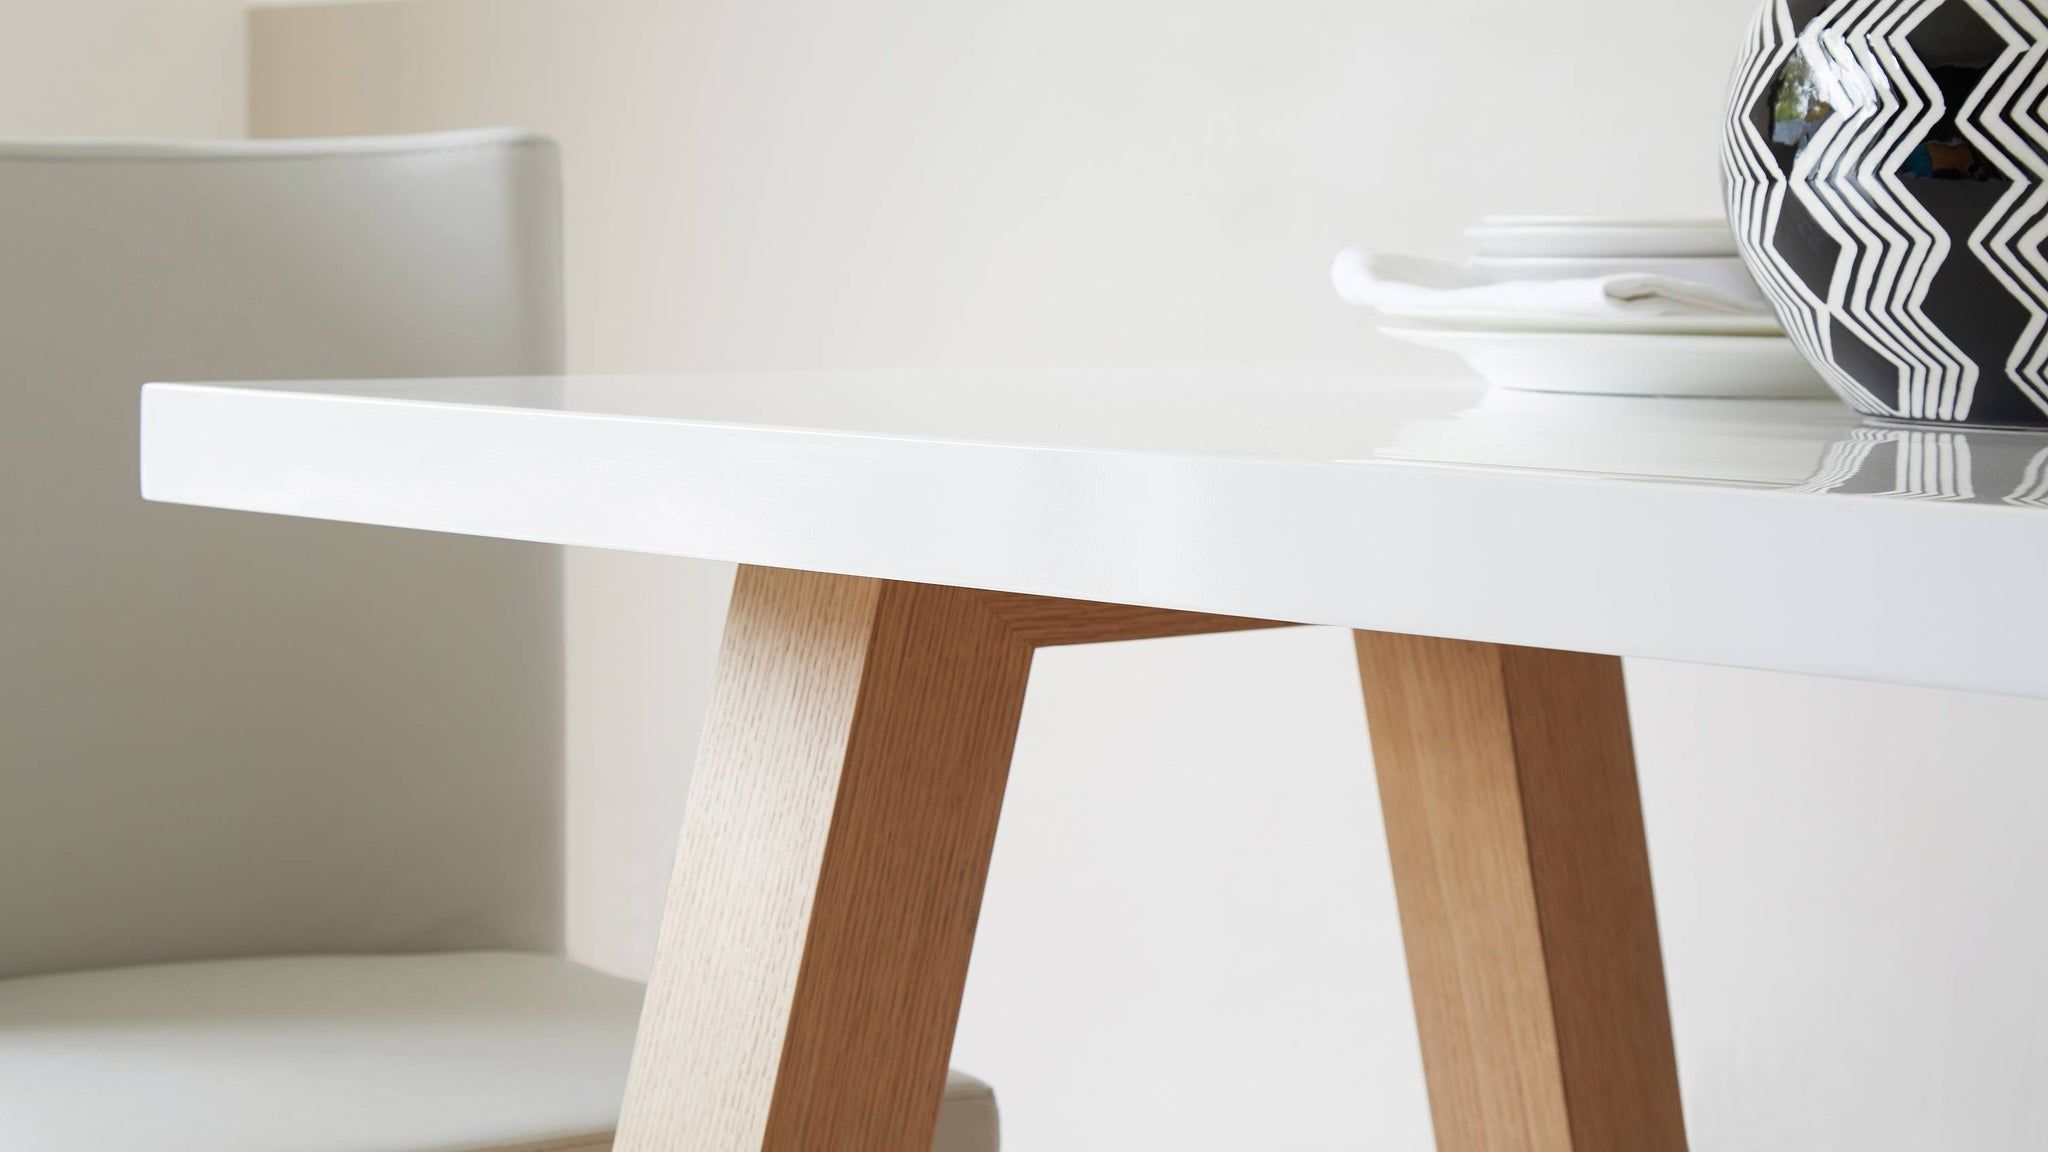 White gloss and oak 6 seater dining table Exclusively Danetti with Julia Kendell range